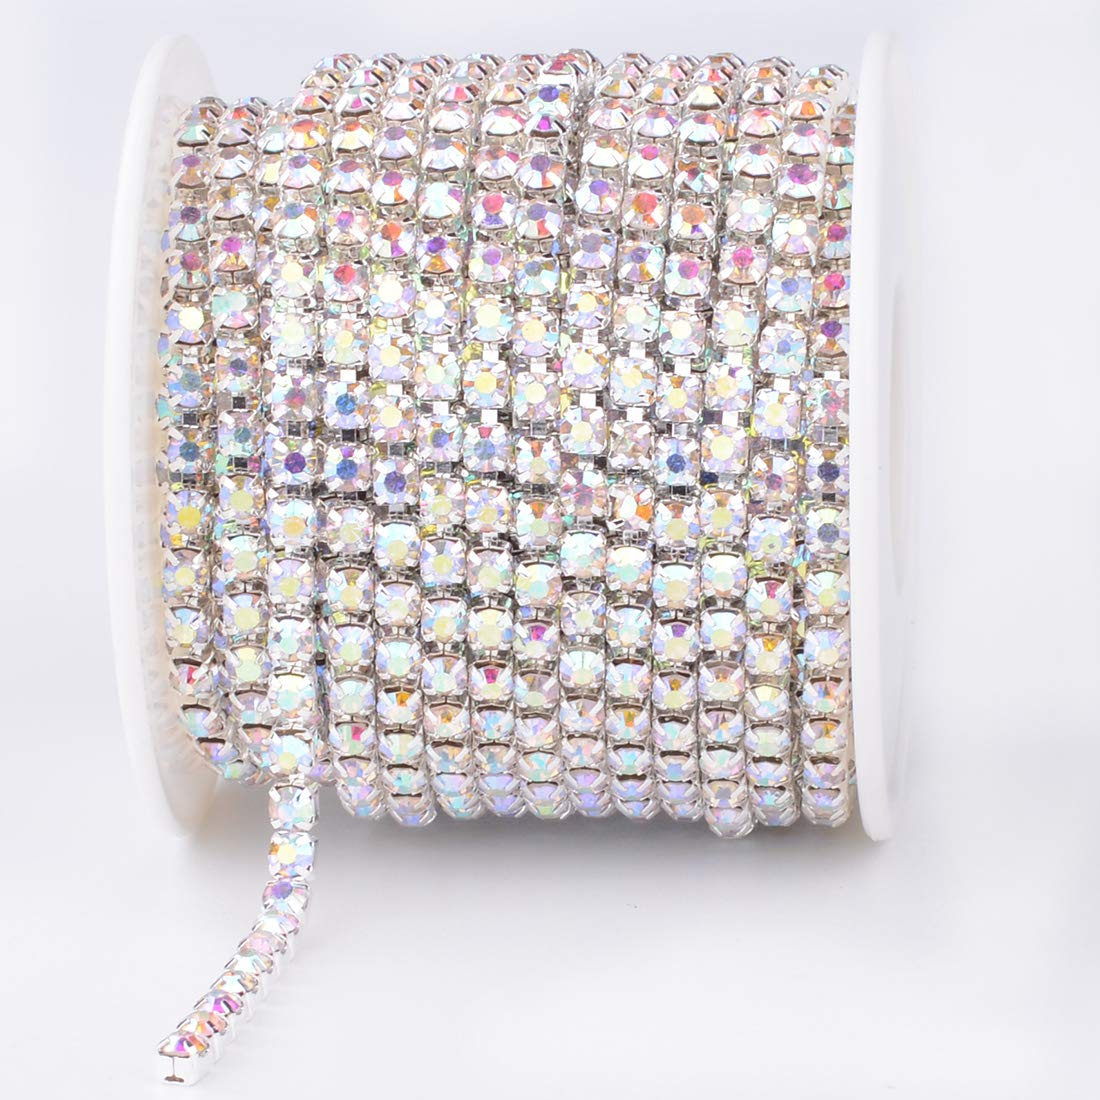 30 Feet 10 Yards Crystal Rhinestone Close Chain Sewing Craft Trimming Silver Claw Chain DIY Jewelry Crafts Wedding Party Decoration (Silver, SS12) Manshui ZLCL00005